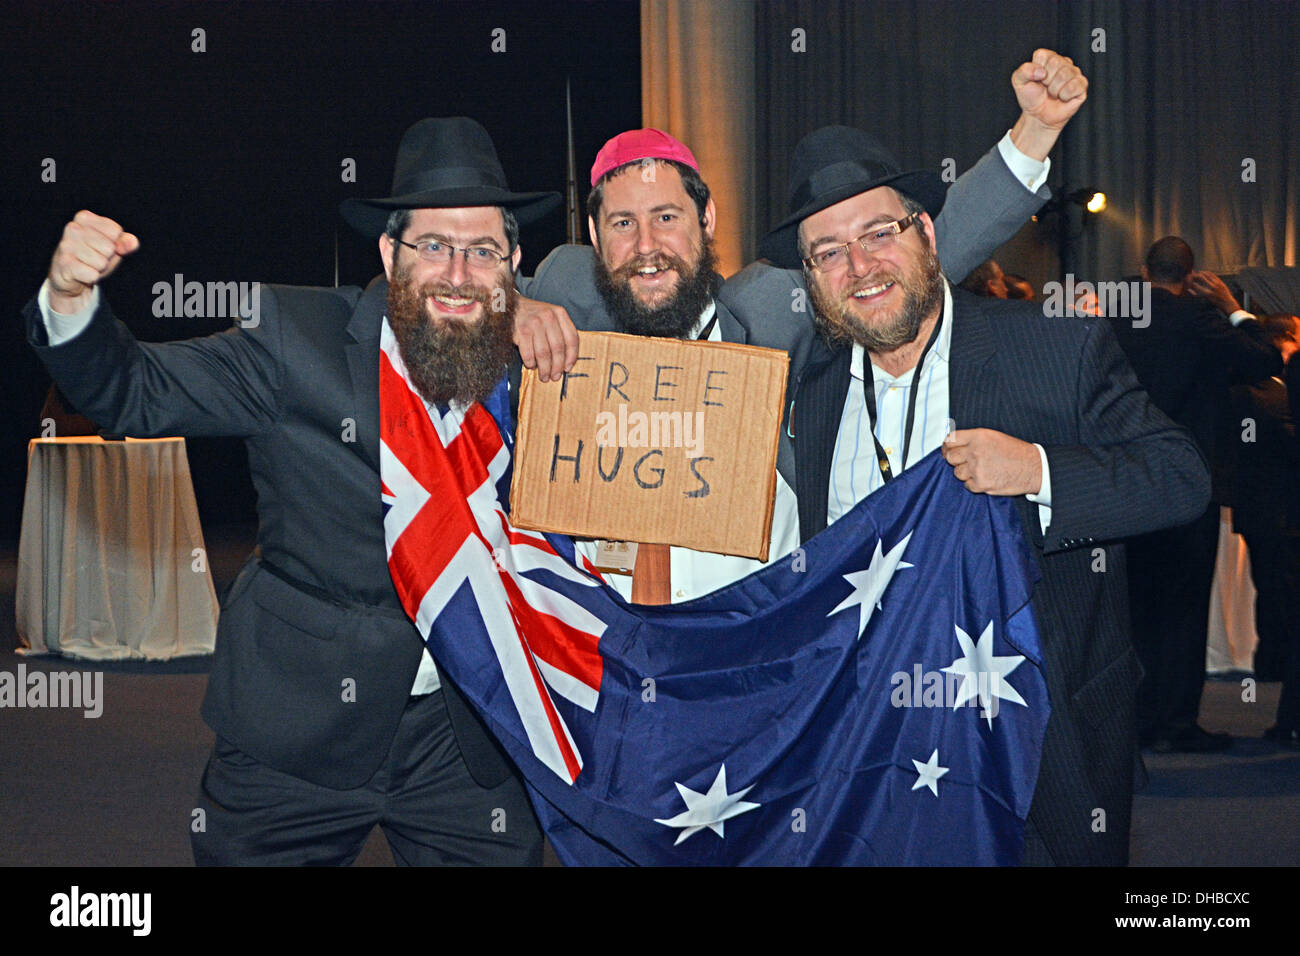 3 Australian rabbis at the convention of Lubavitch emissaries in Brooklyn, New York 11.3.2013. - Stock Image